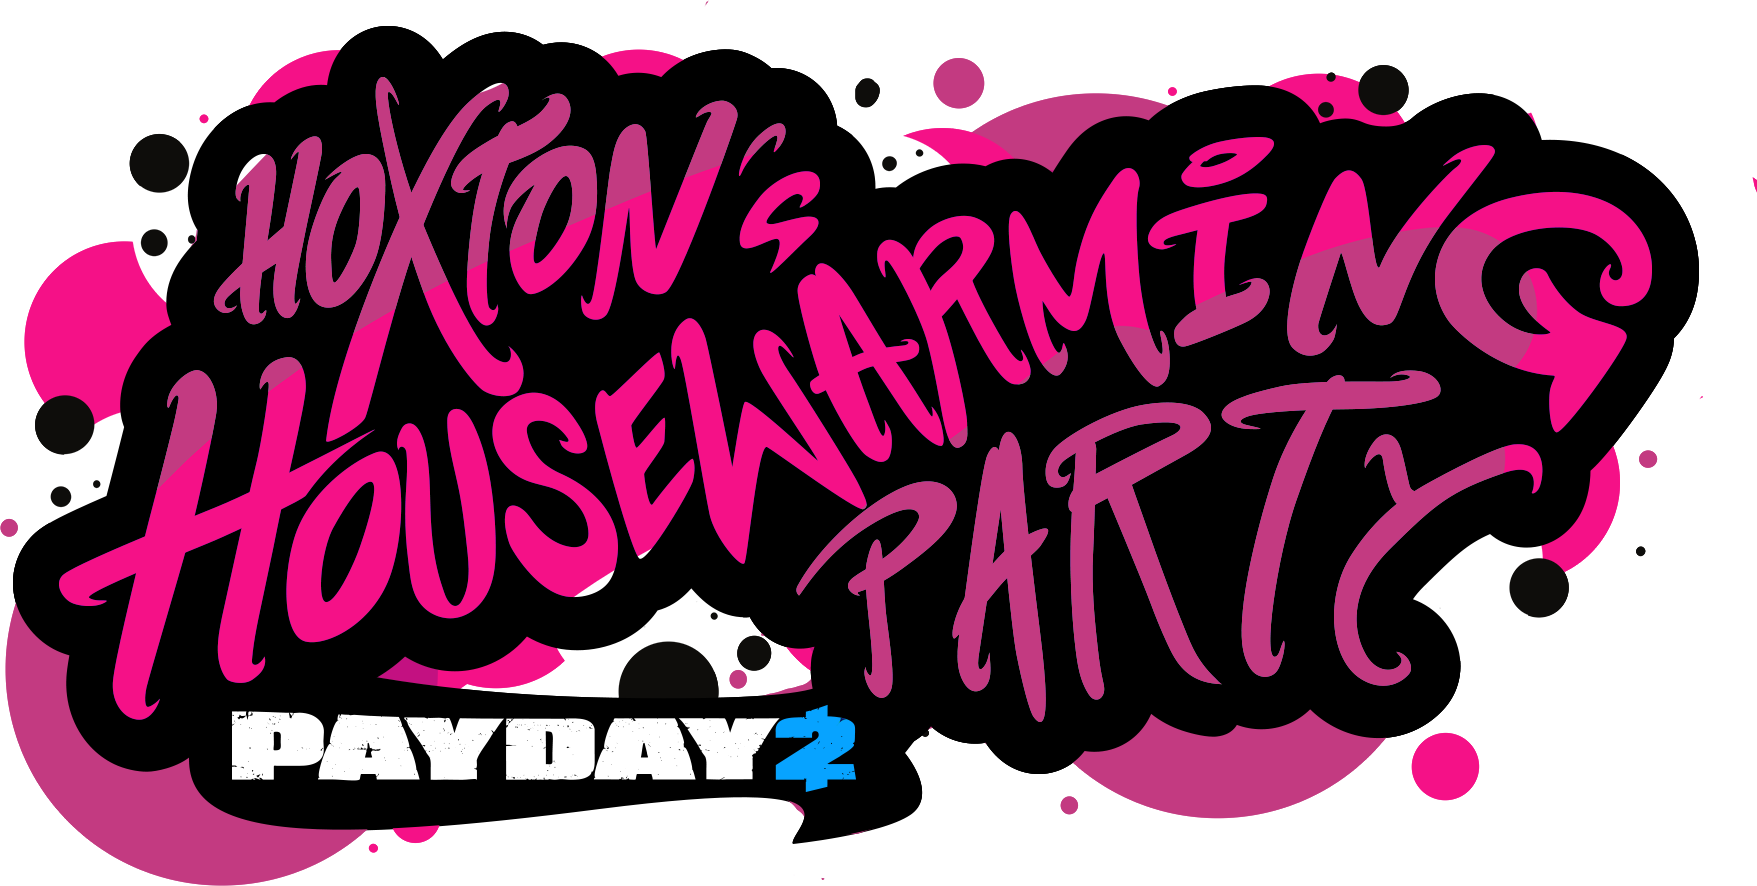 Hoxton's Housewarming Party